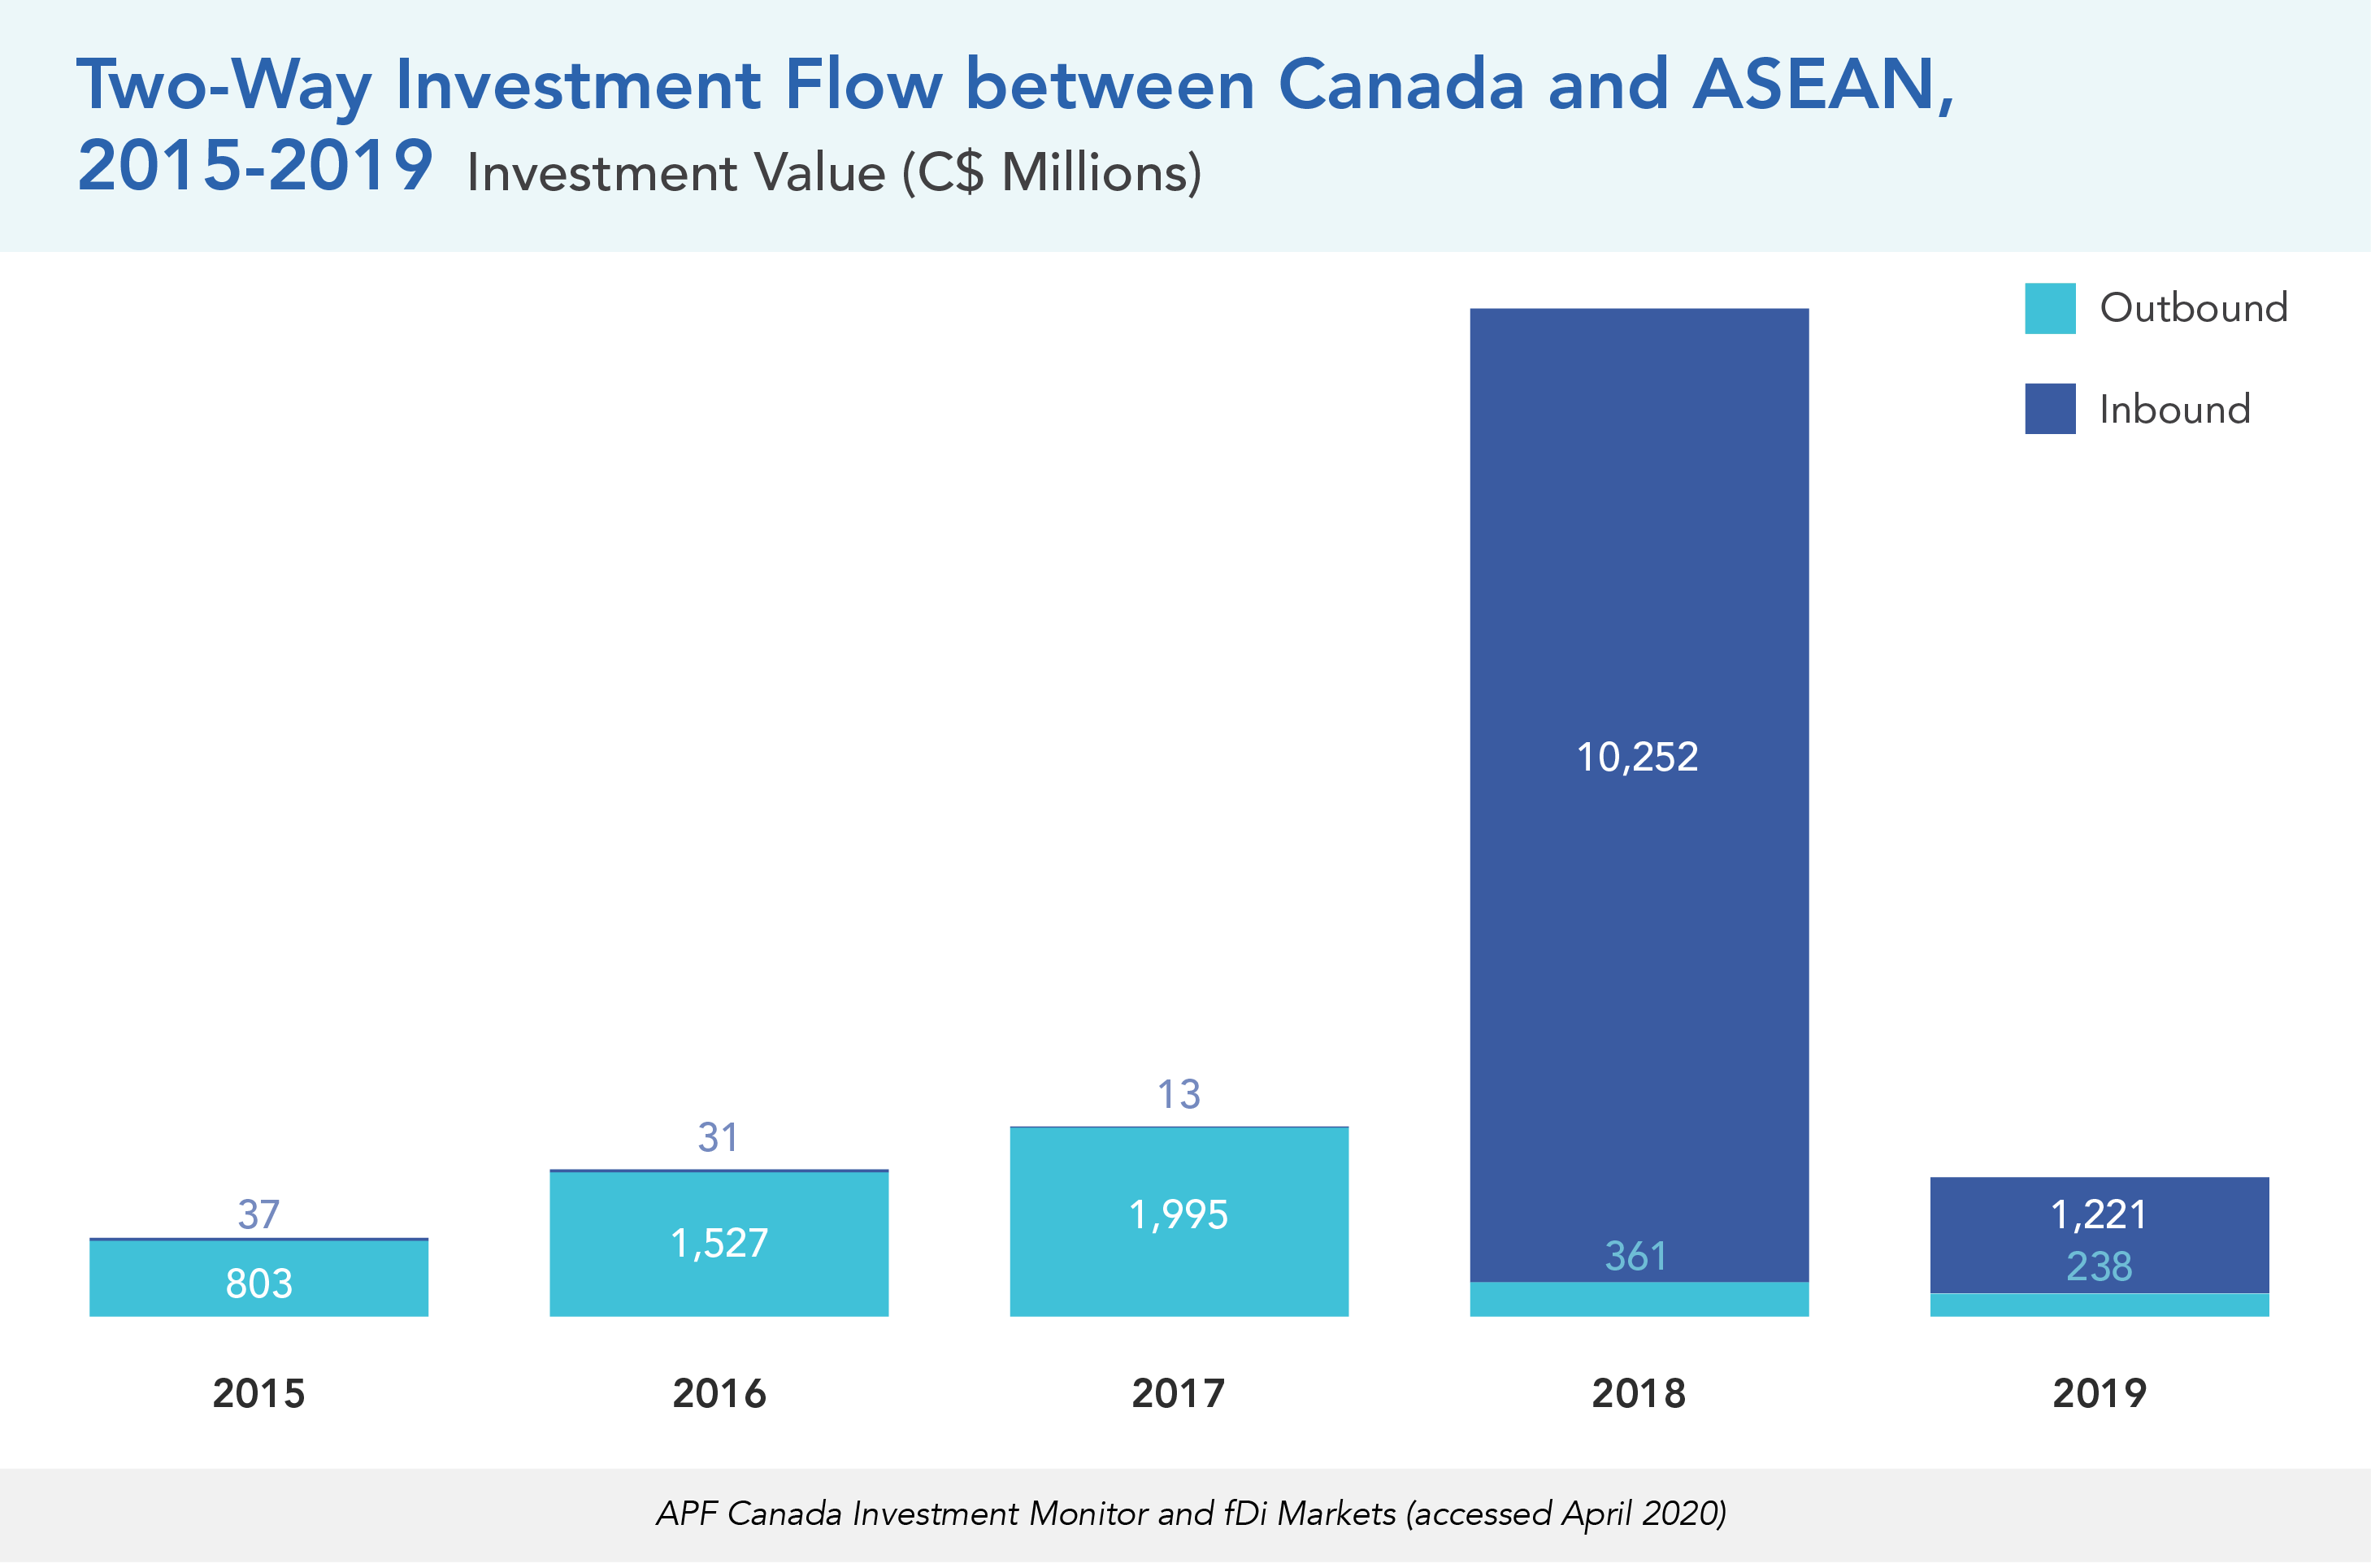 Two-Way Investment Flow between Canada and ASEAN, 2015-2019